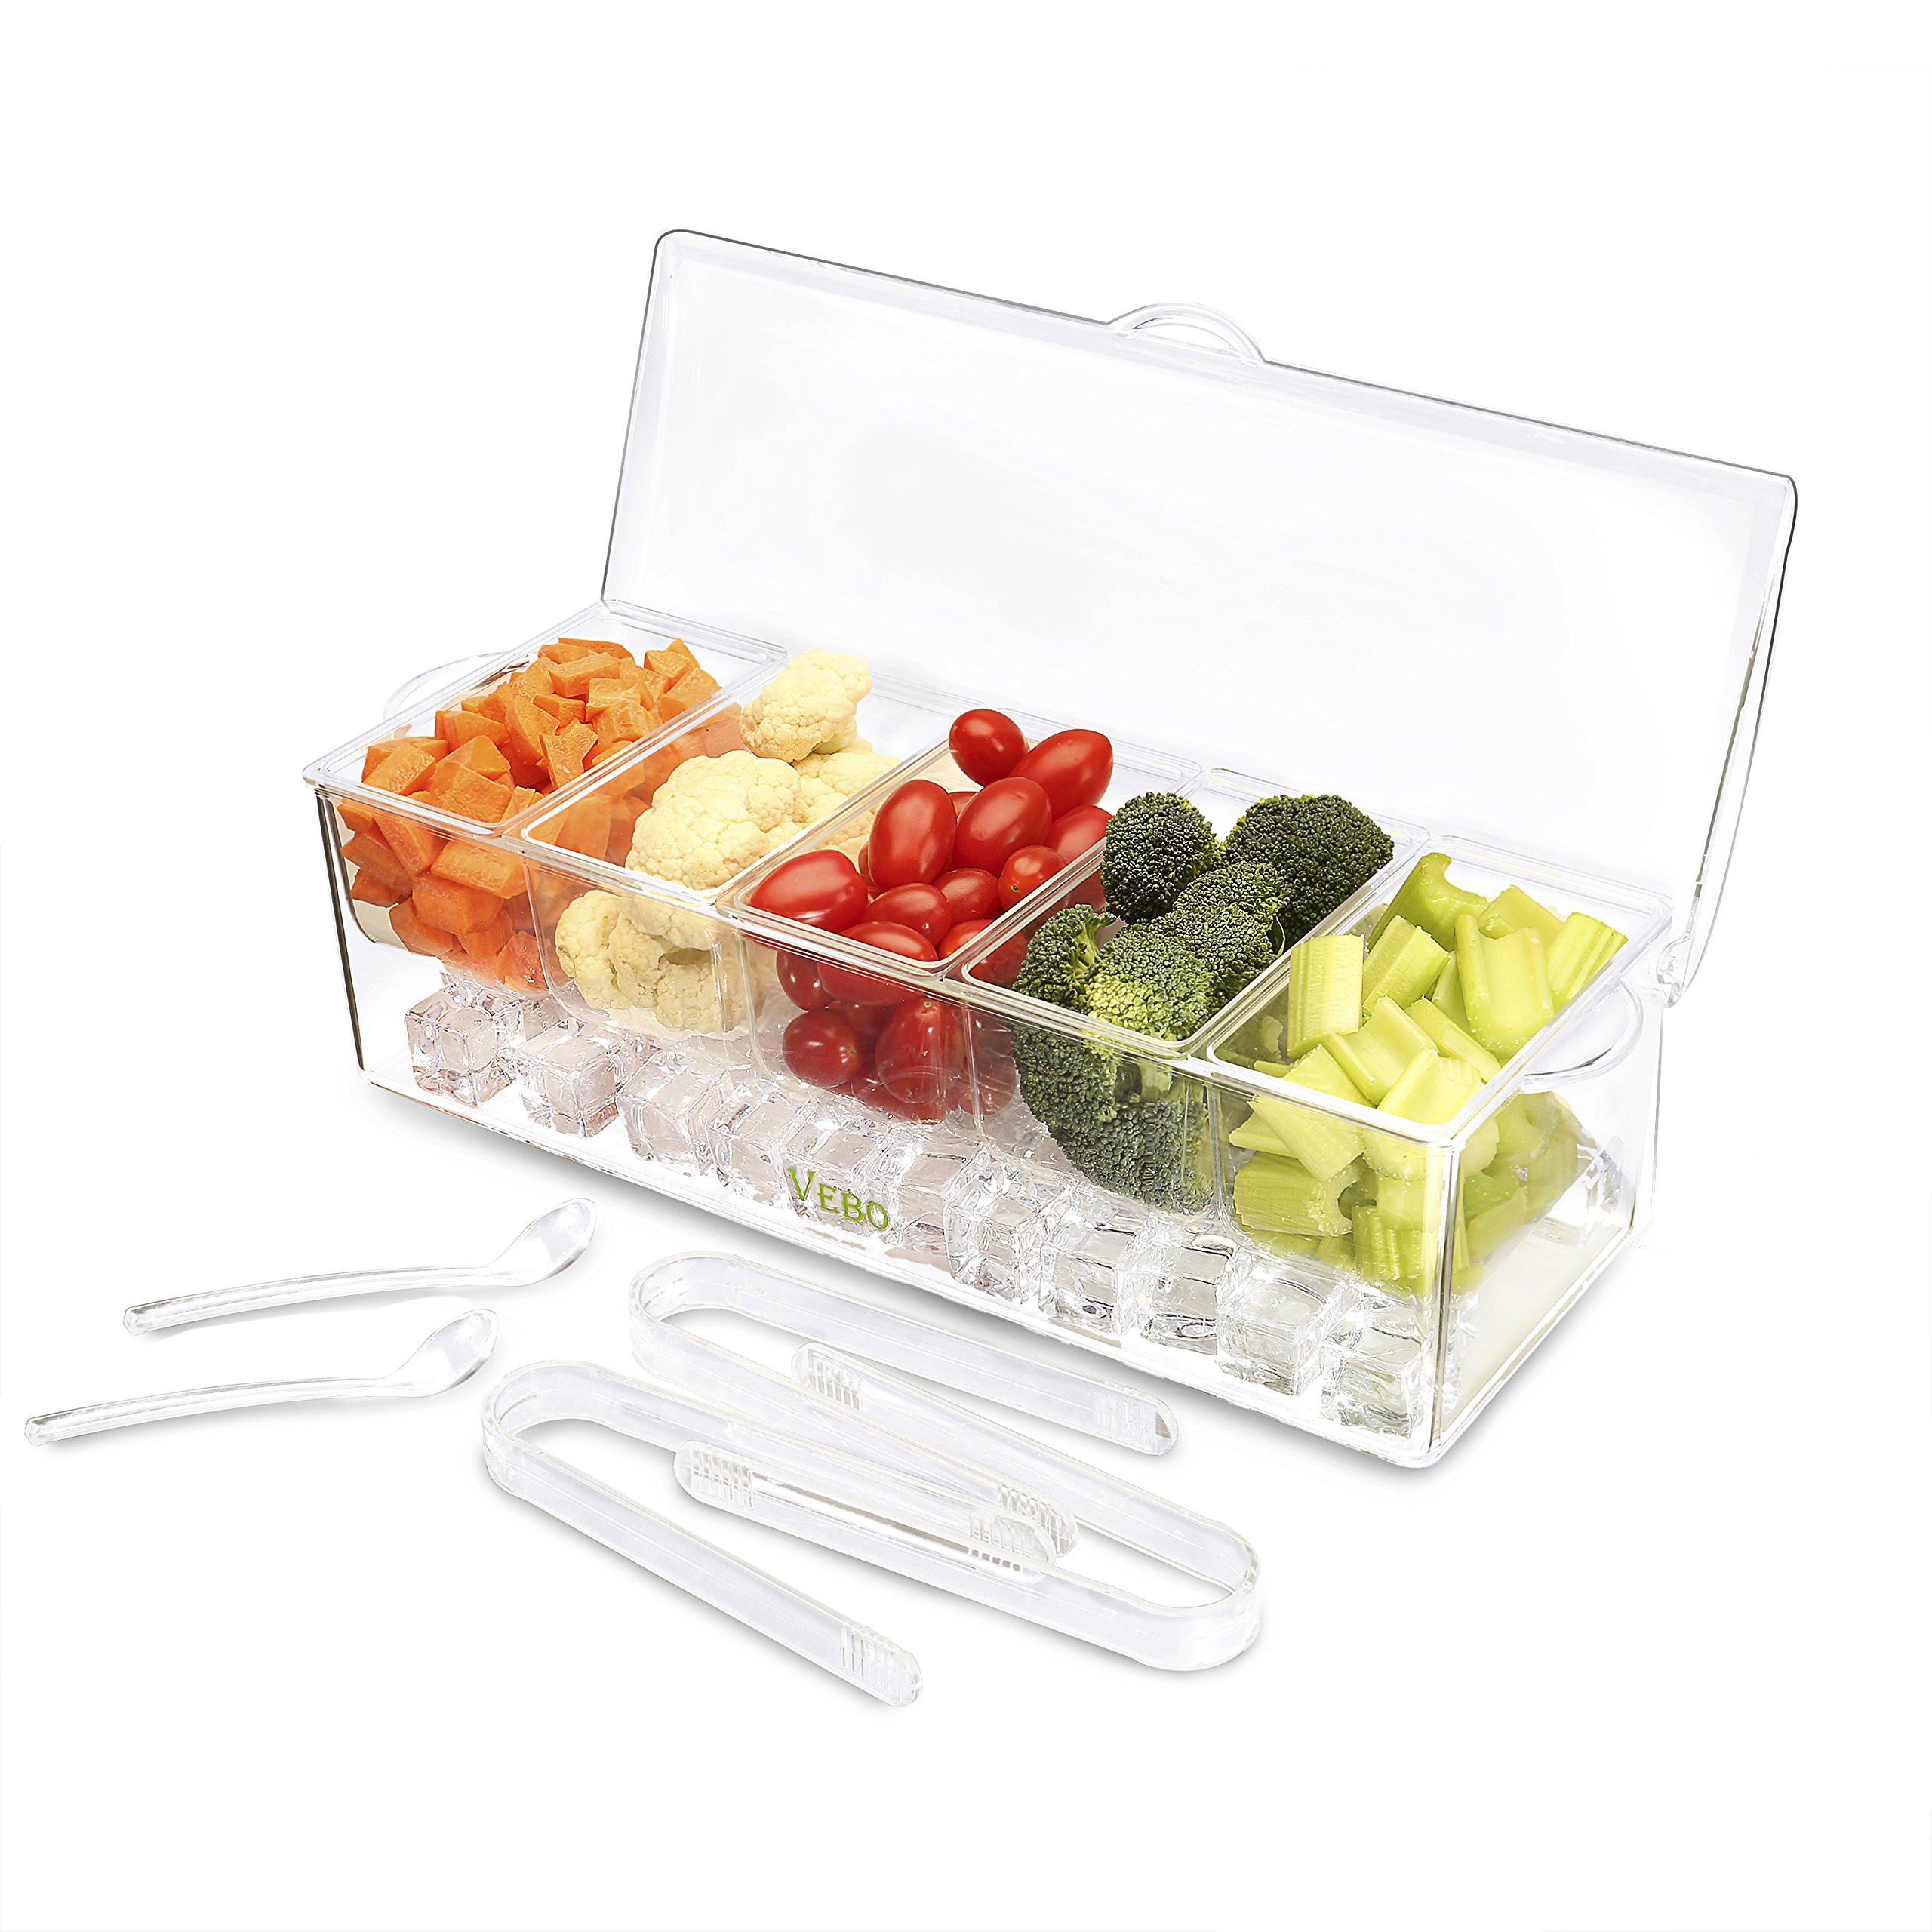 Ice Chilled 5 Compartment Condiment Server Caddy - Serving Tray Container with 5 Removable Dishes with over 2 Cup Capacity Each and Hinged Lid   3 Serving Spoons + 3 Tongs Included By VeBo by VEBO